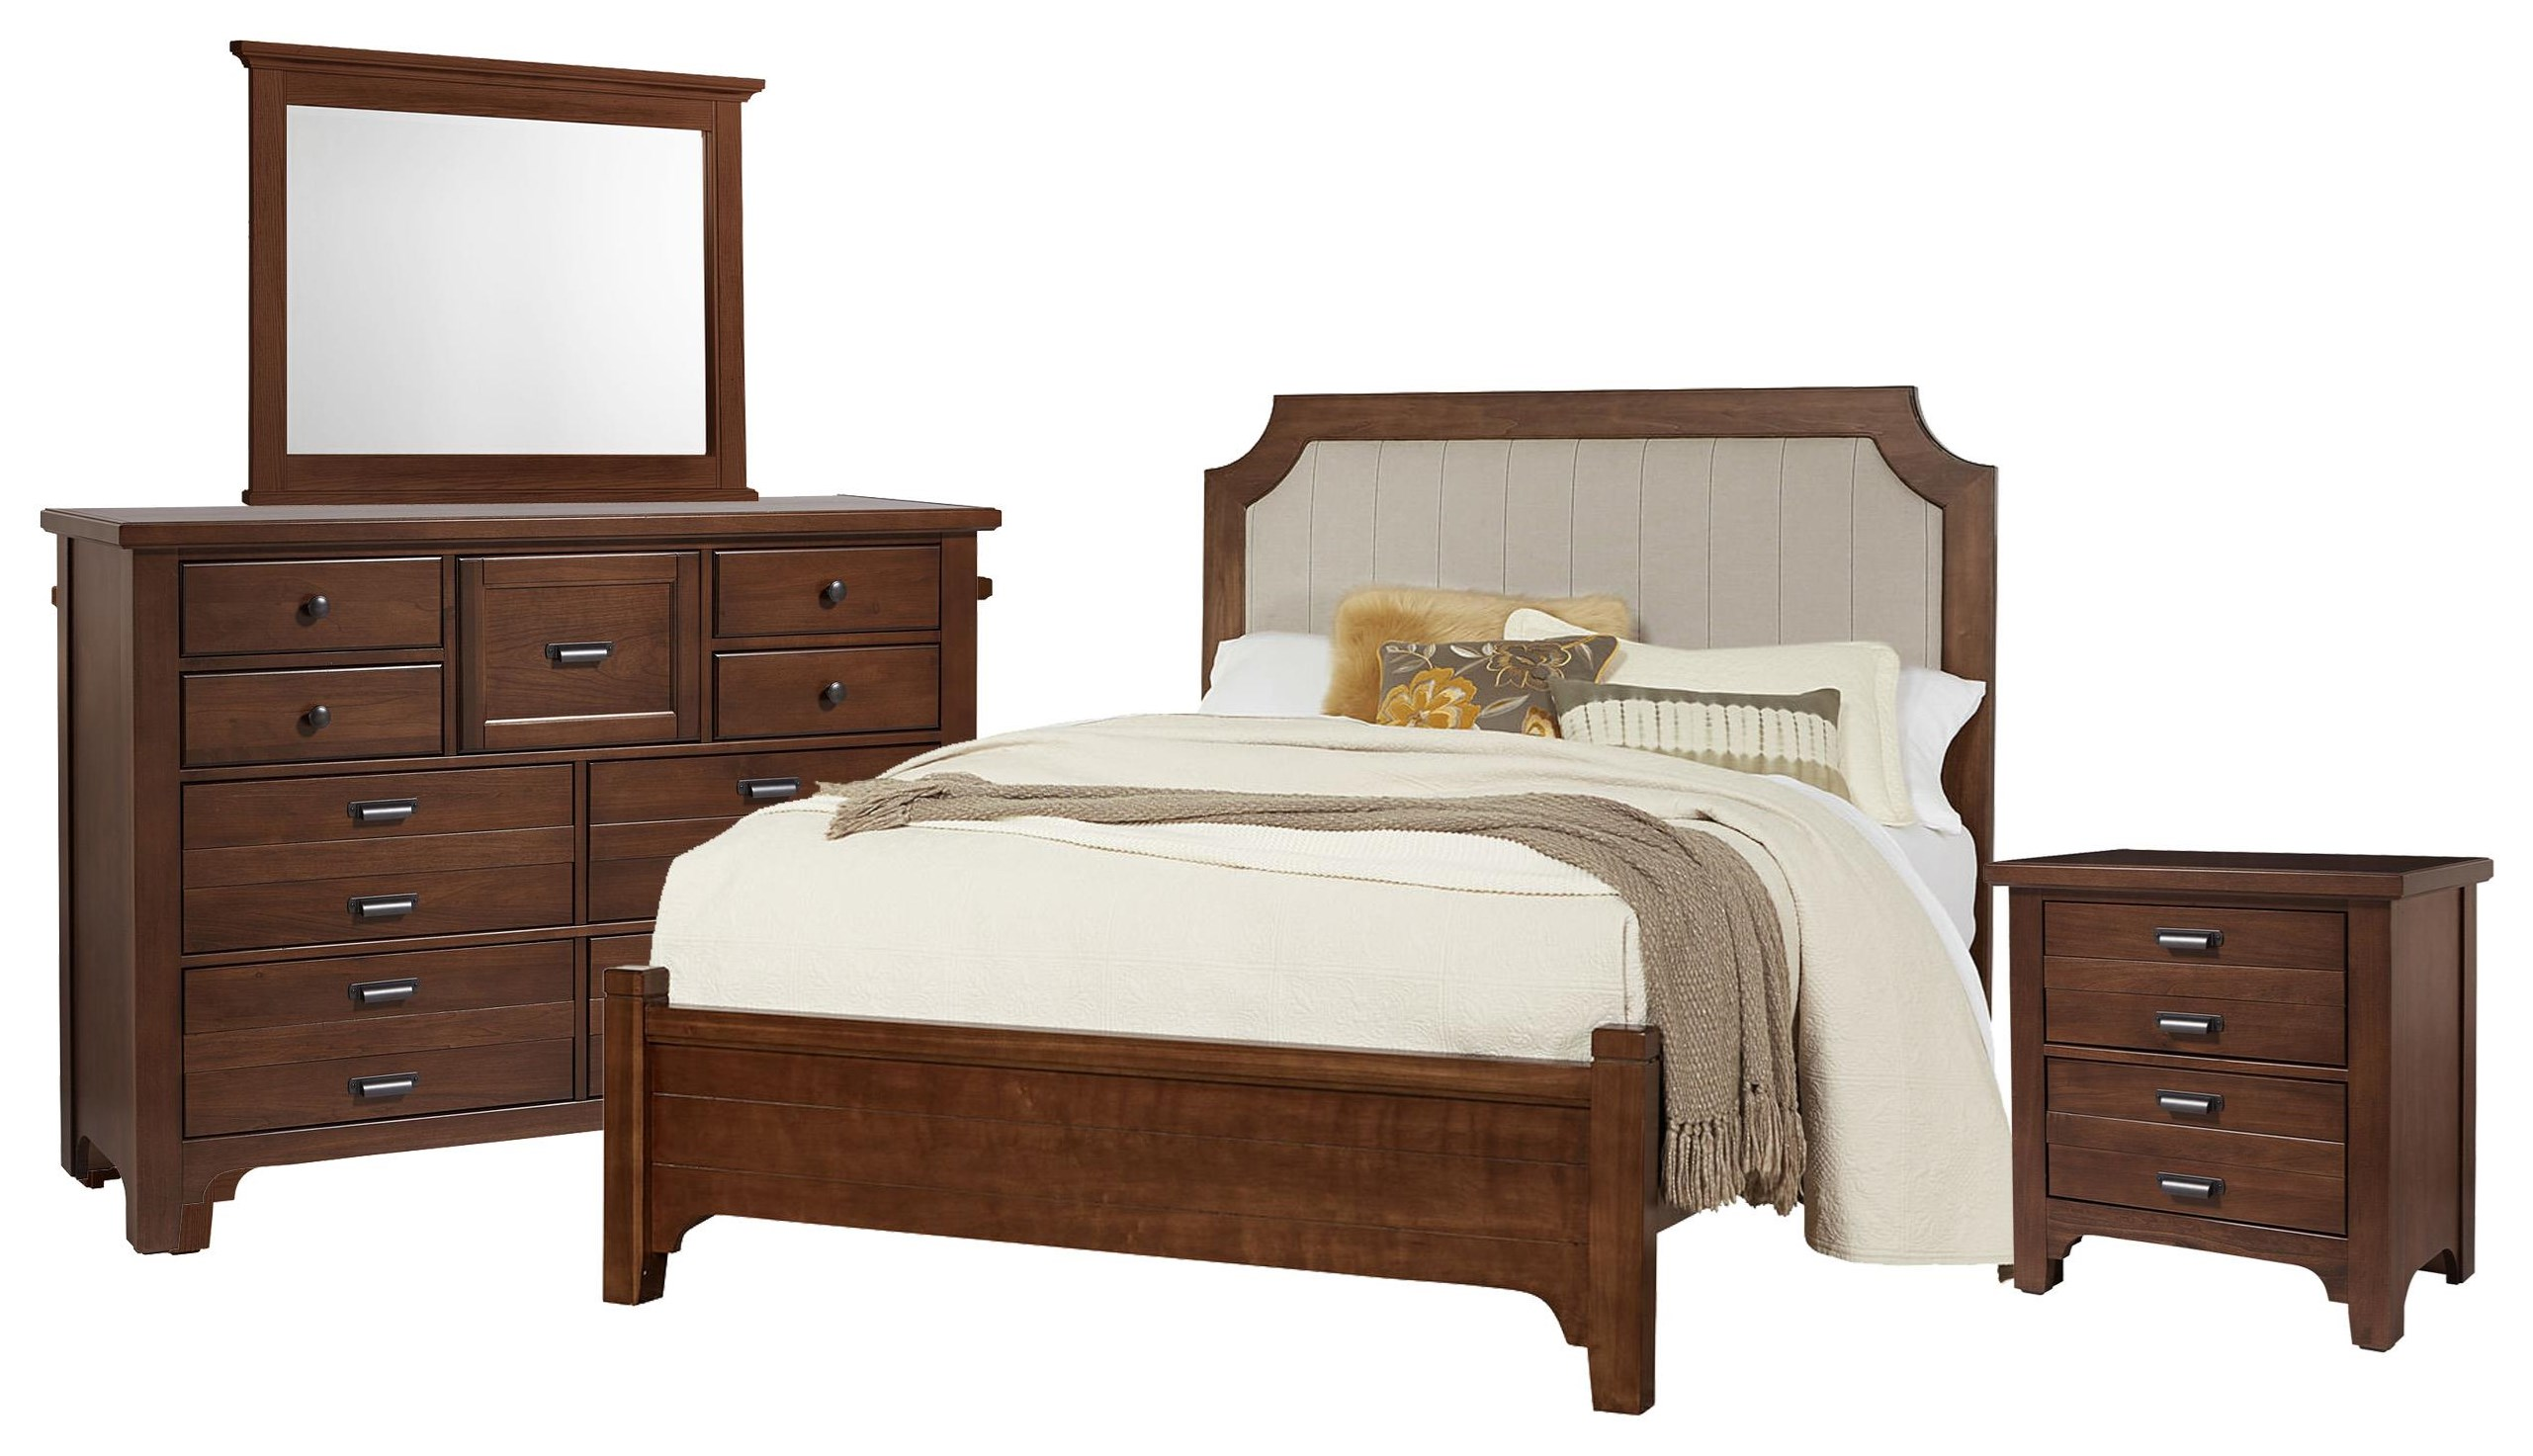 Bungalo Home King Upholstered  Bed, Dresser, Mirror, Nigh by Vaughan Bassett at Johnny Janosik